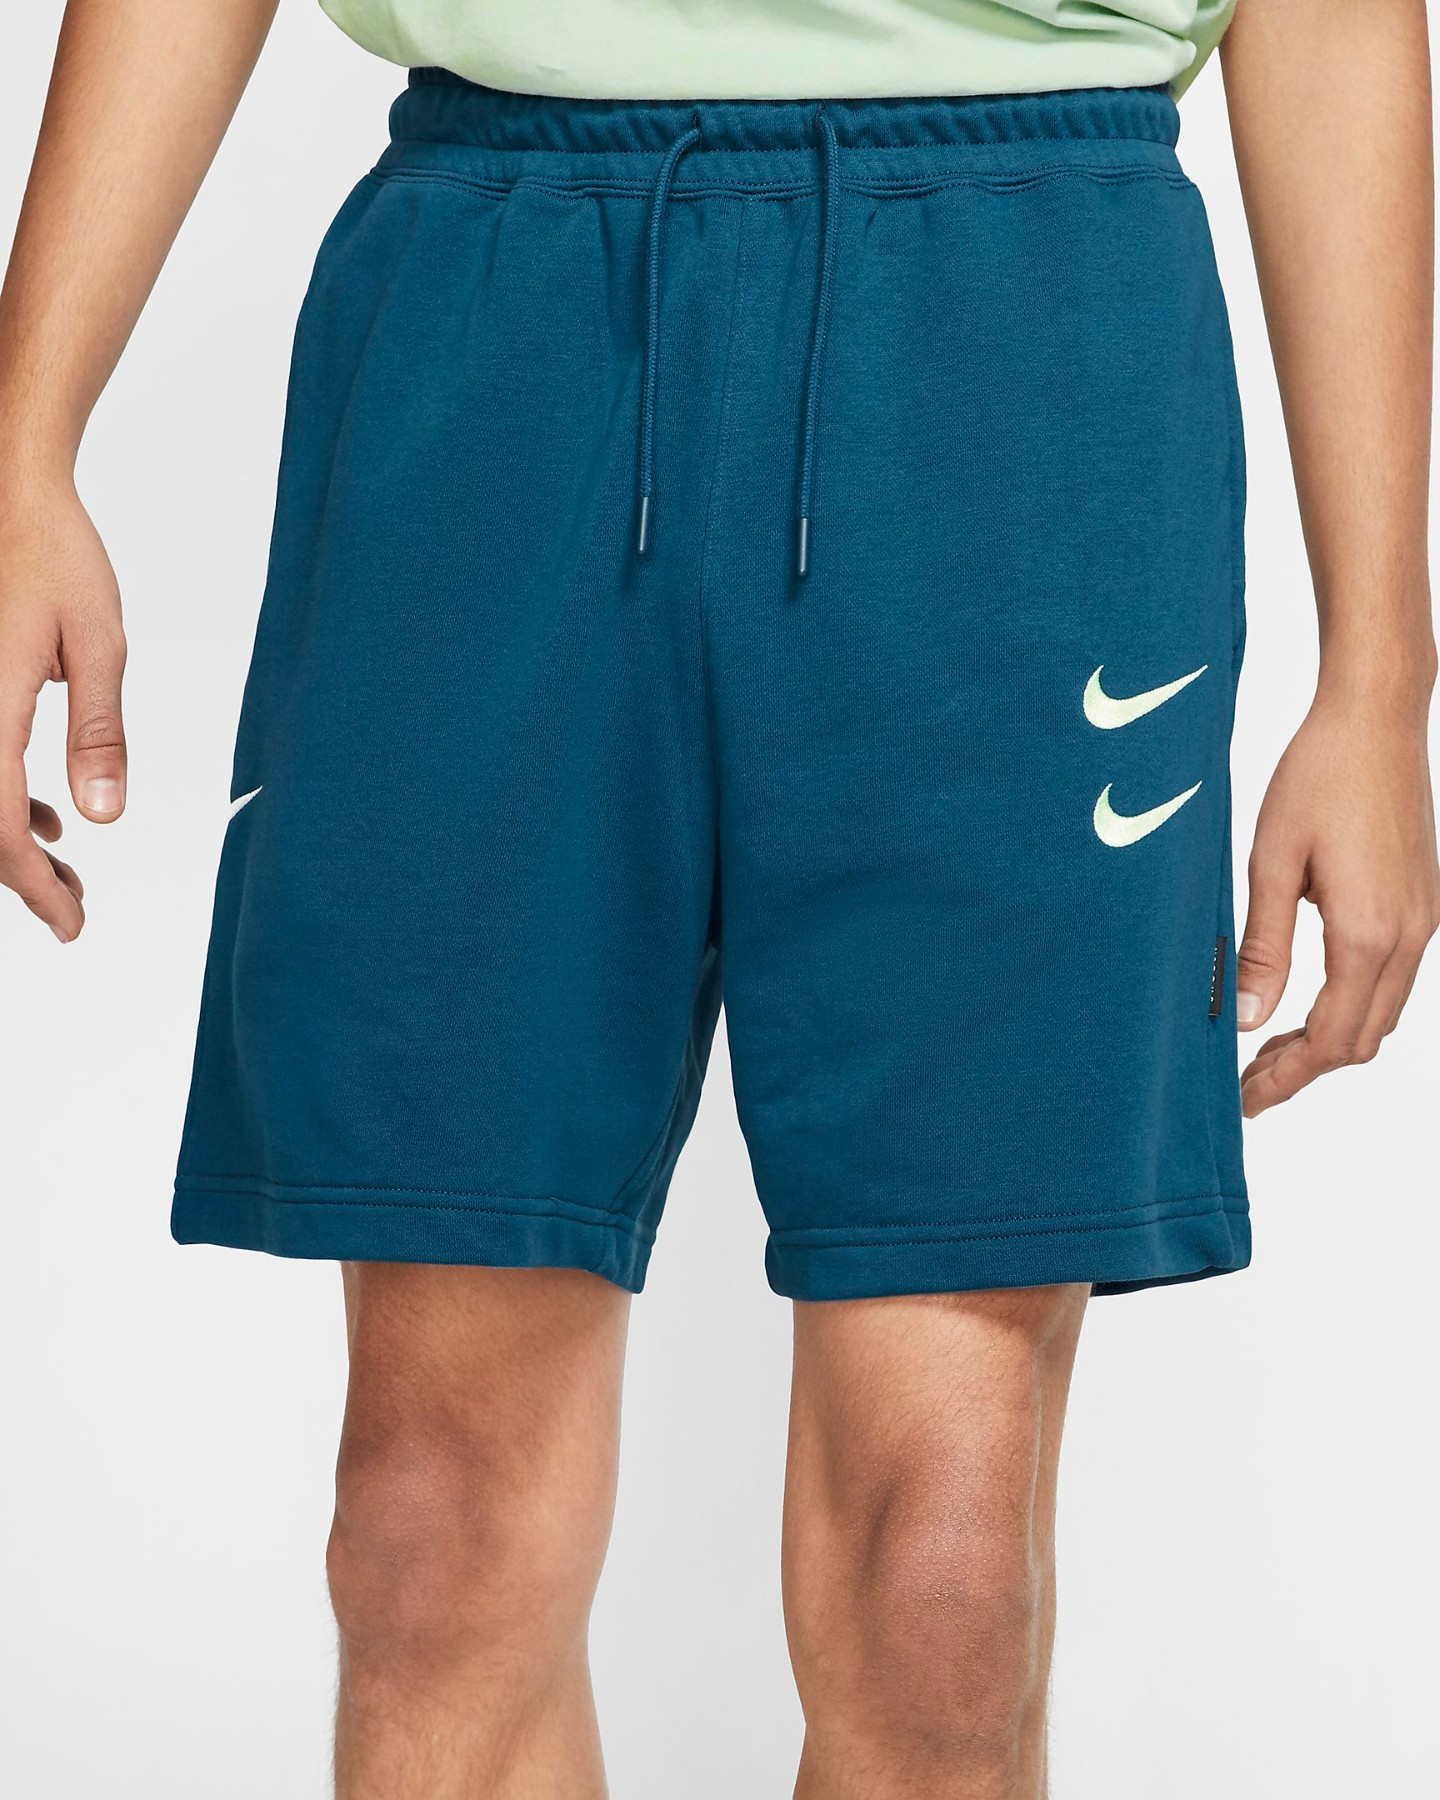 Nike Shorts in French Terry blu